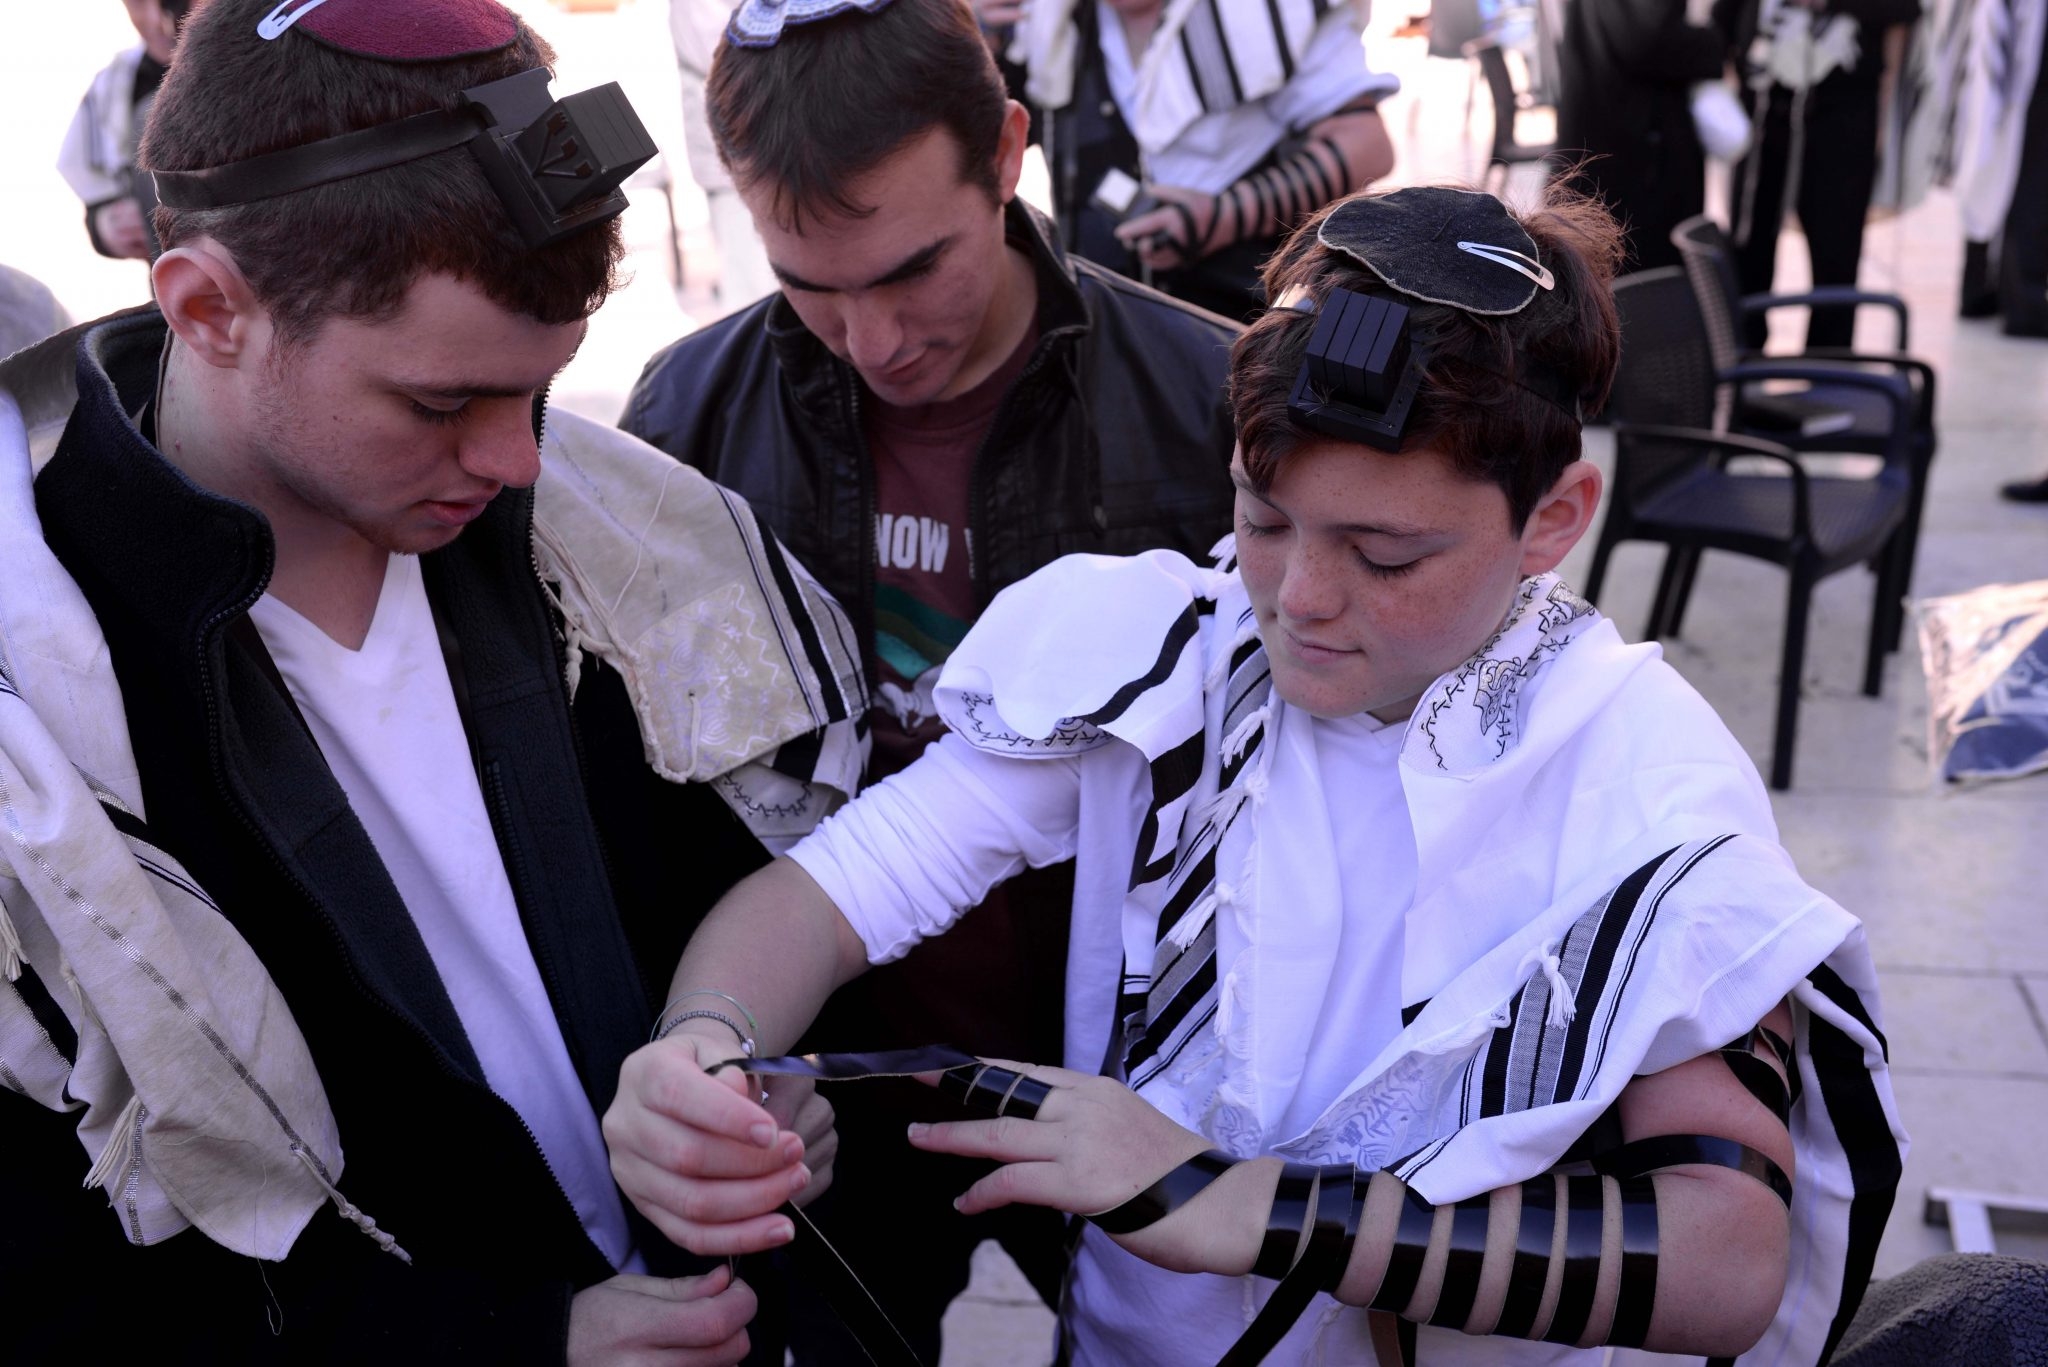 Bar Mitzvah celebration at the Western Wall